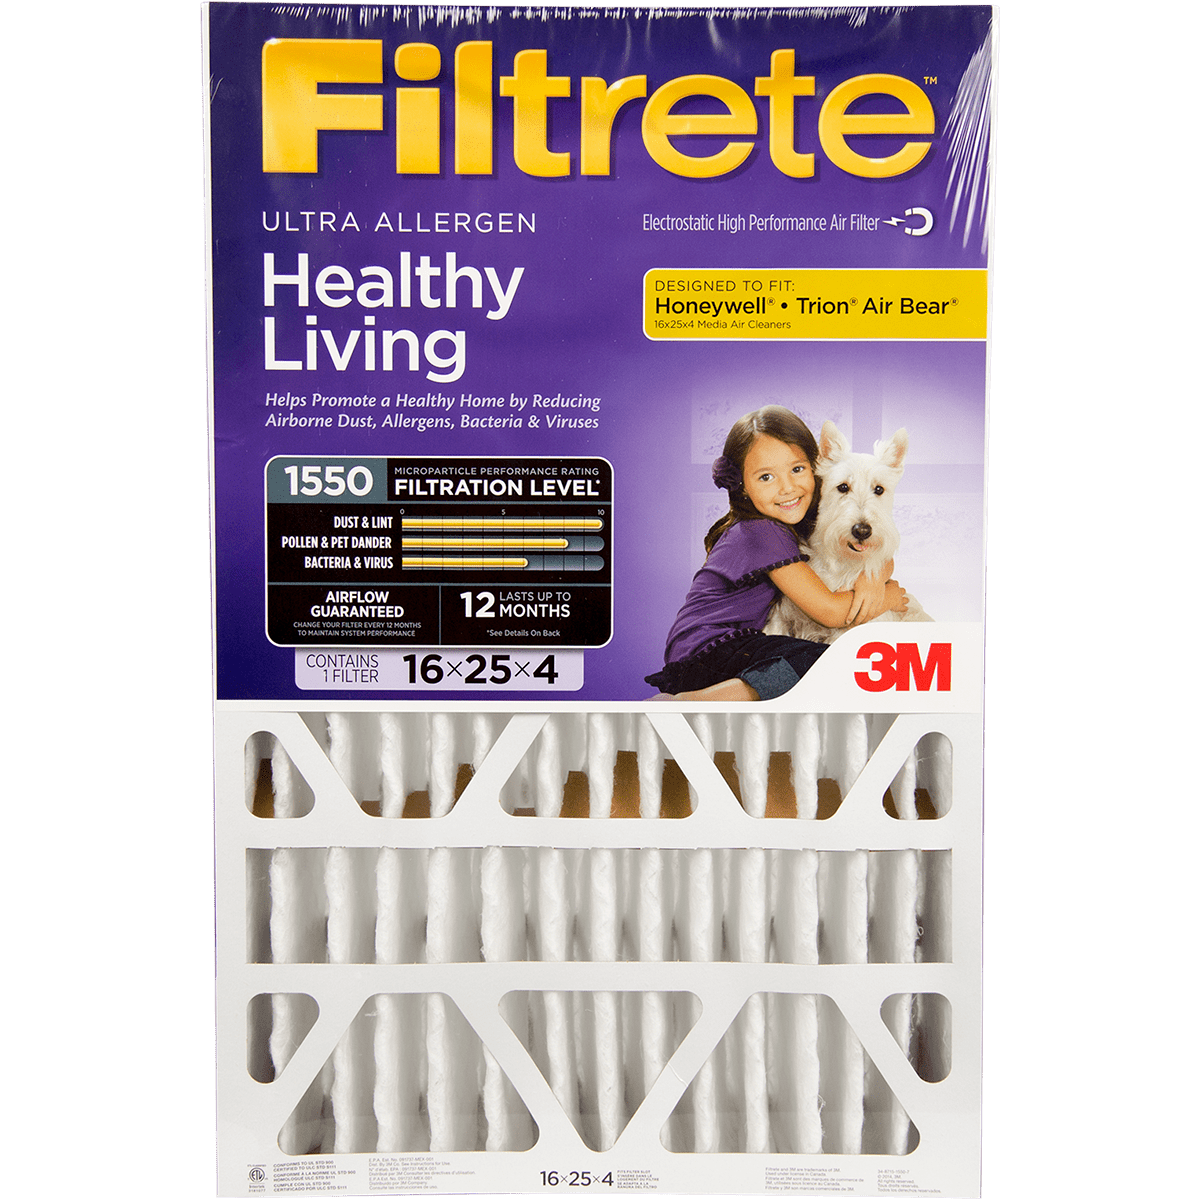 "3M Filtrete Healthy Living 1550 MPR Ultra Allergen Reduction Filters for 4"""" Housings"" fi5606"